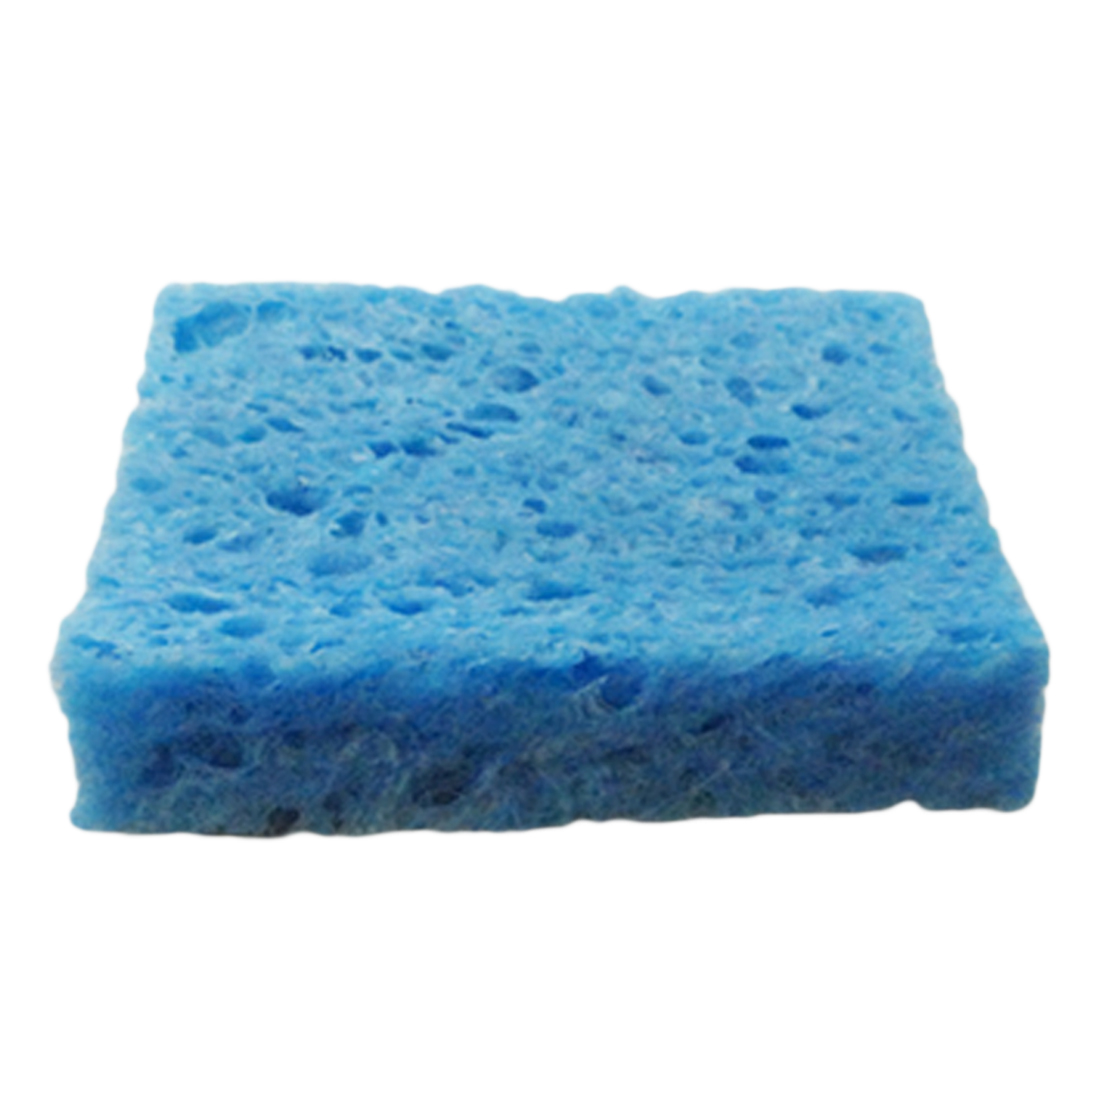 Tool Parts Blue Cleaning Sponge Cleaner for bga Electric Welding Soldering Iron